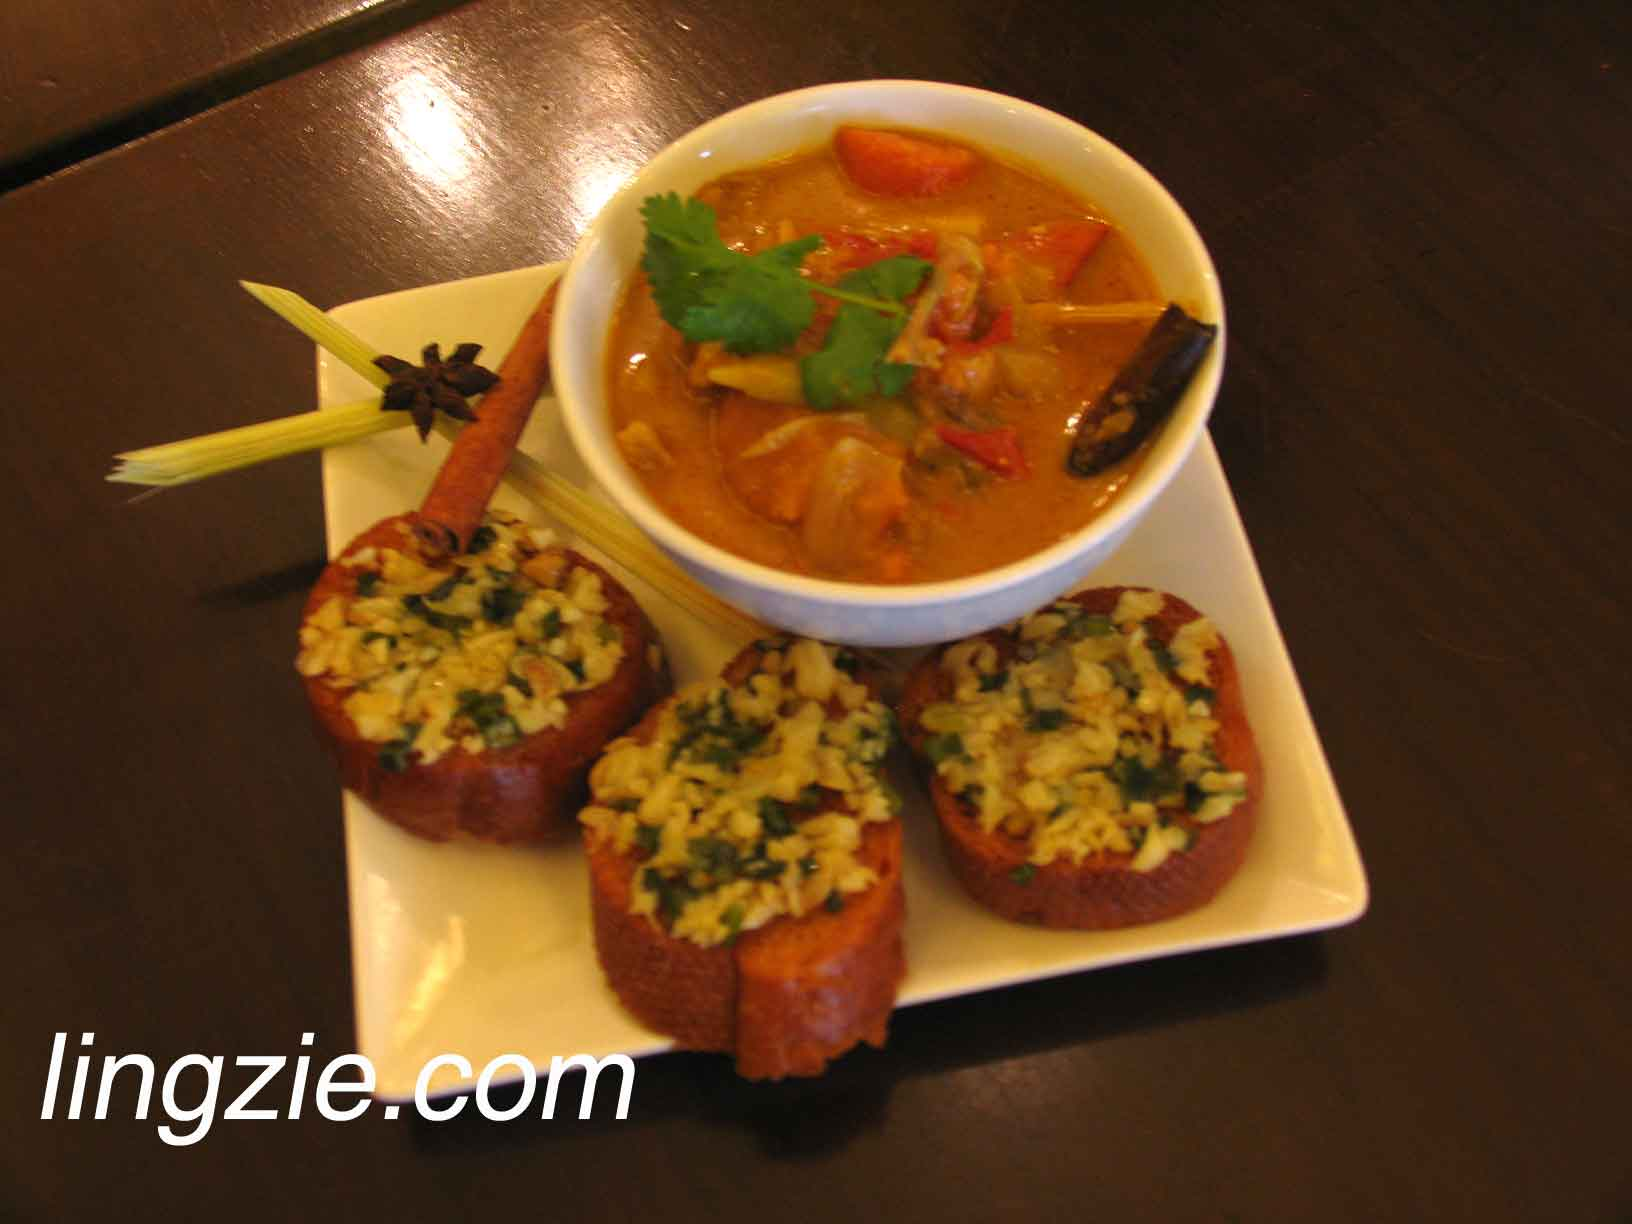 Frog Curry with Garlic Spiced Baguette (RM10.80)